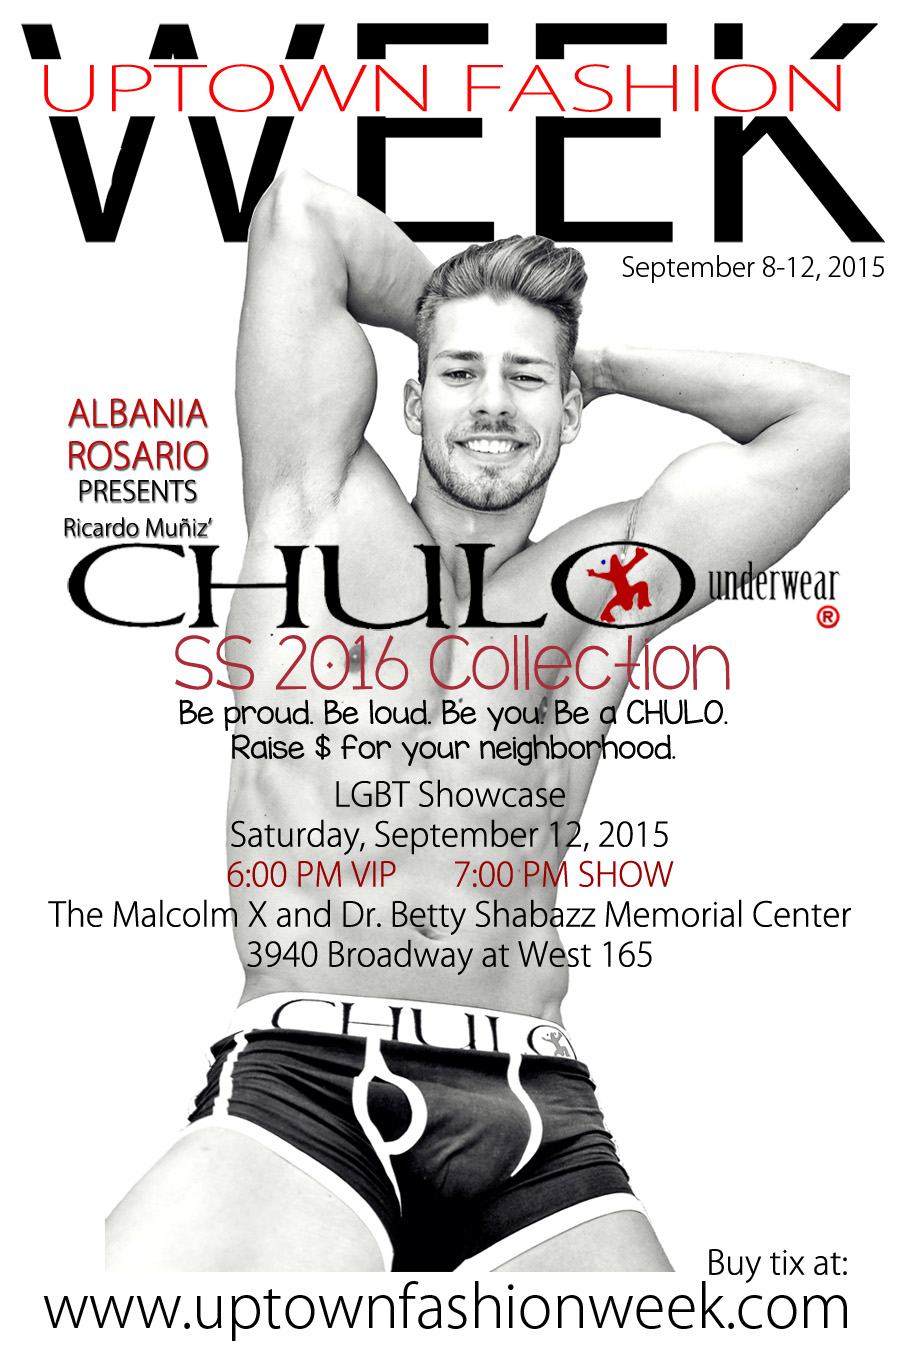 CHULO Underwear UPTOWN FASHION WEEK promo